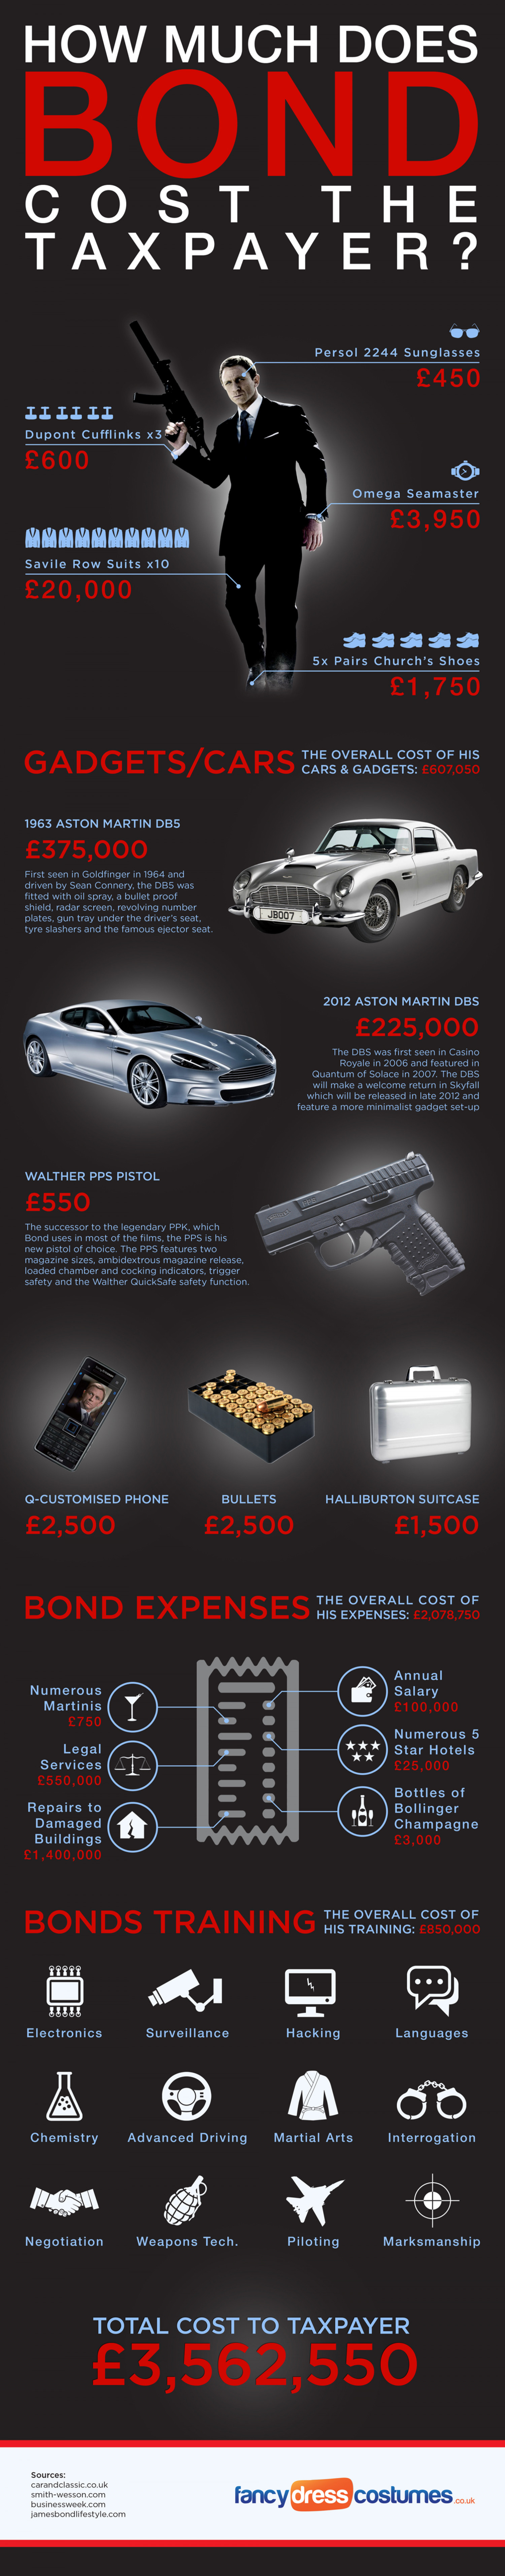 How Much Does James Bond Cost The Taxpayer? Infographic